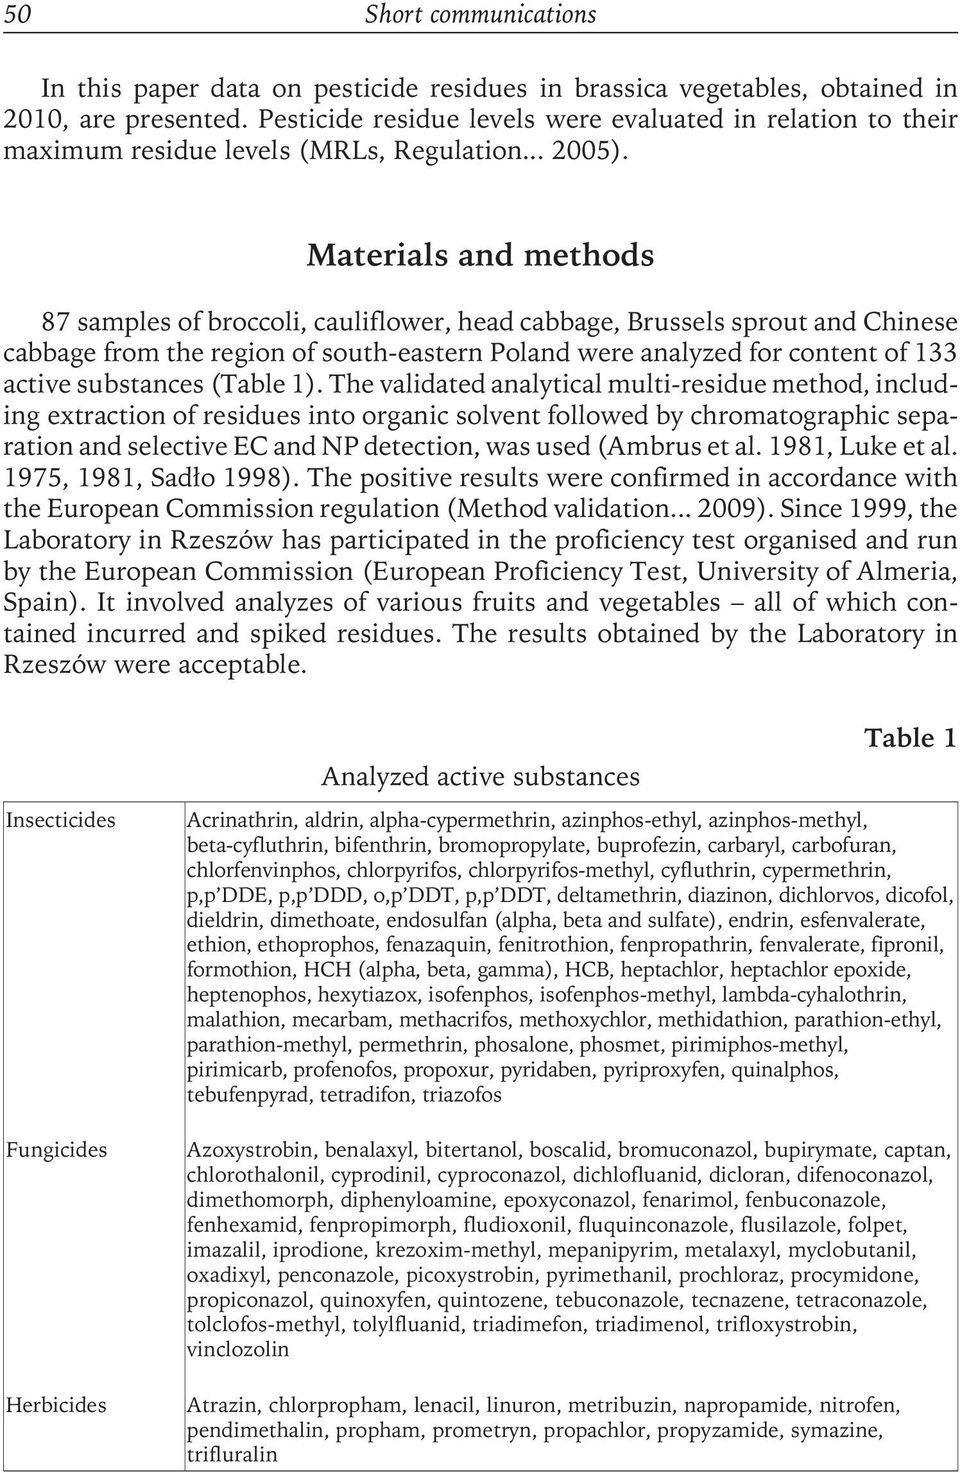 Materials and methods 87 samples of broccoli, cauliflower, head cabbage, Brussels sprout and Chinese cabbage from the region of south-eastern Poland were analyzed for content of 33 active substances